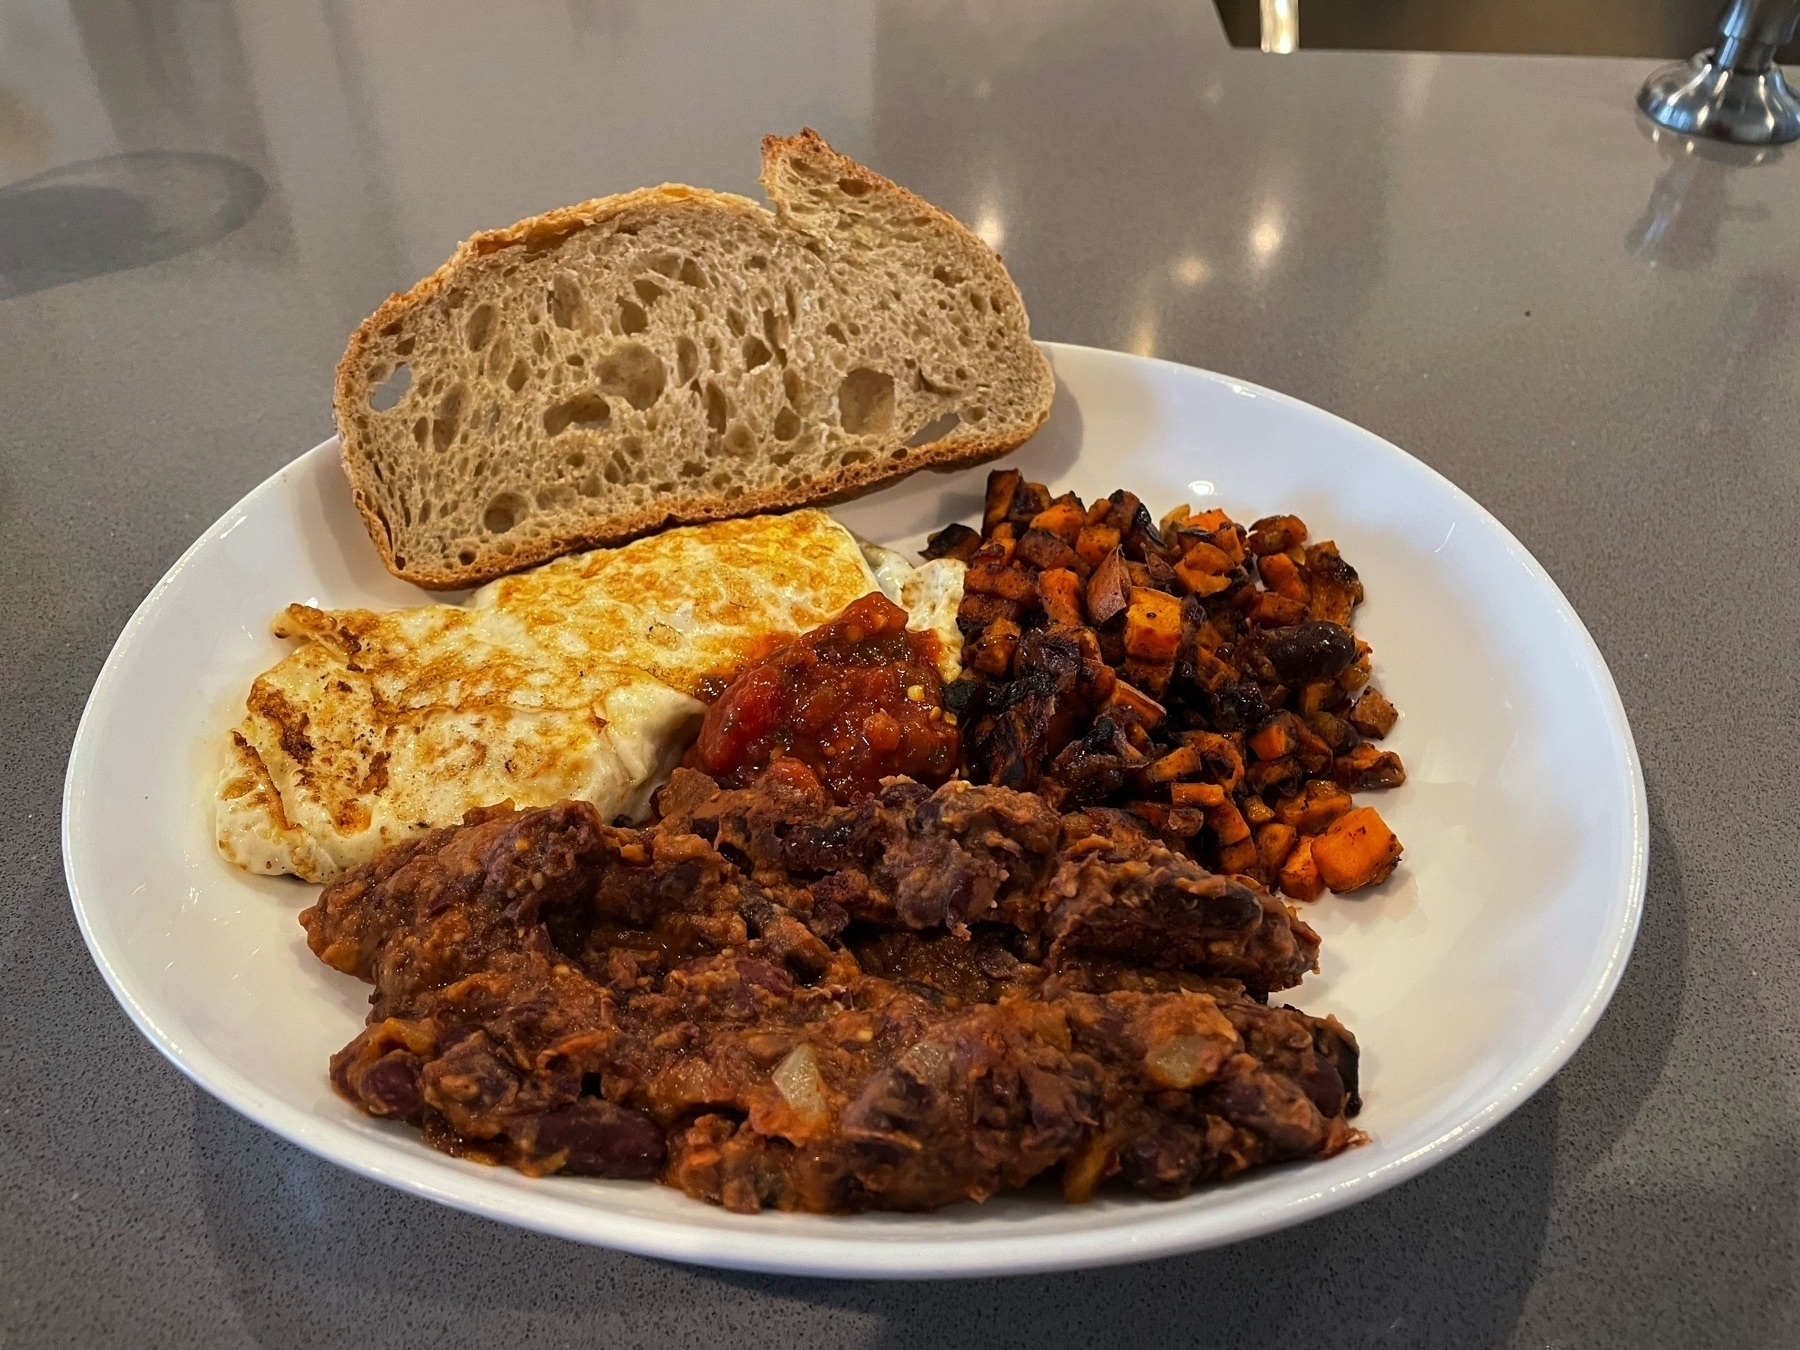 Breakfast plate with two eggs, sweet potato hash, beans, and a slice of sourdough.